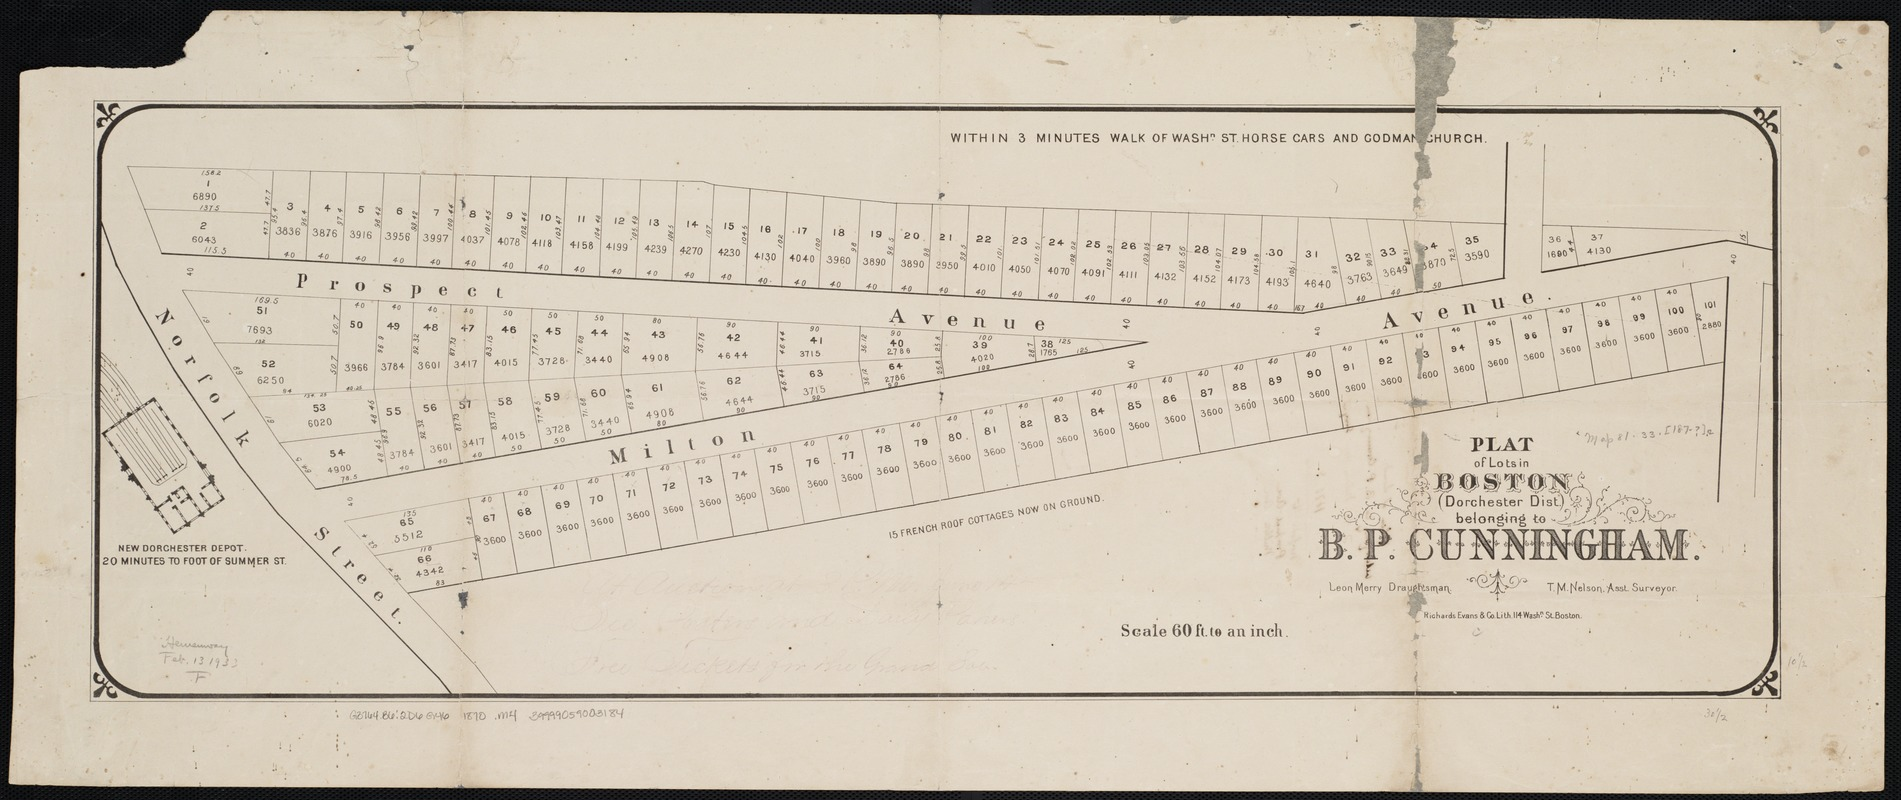 Plat of lots in Boston (Dorchester Dist.) belonging to B.P. Cunningham